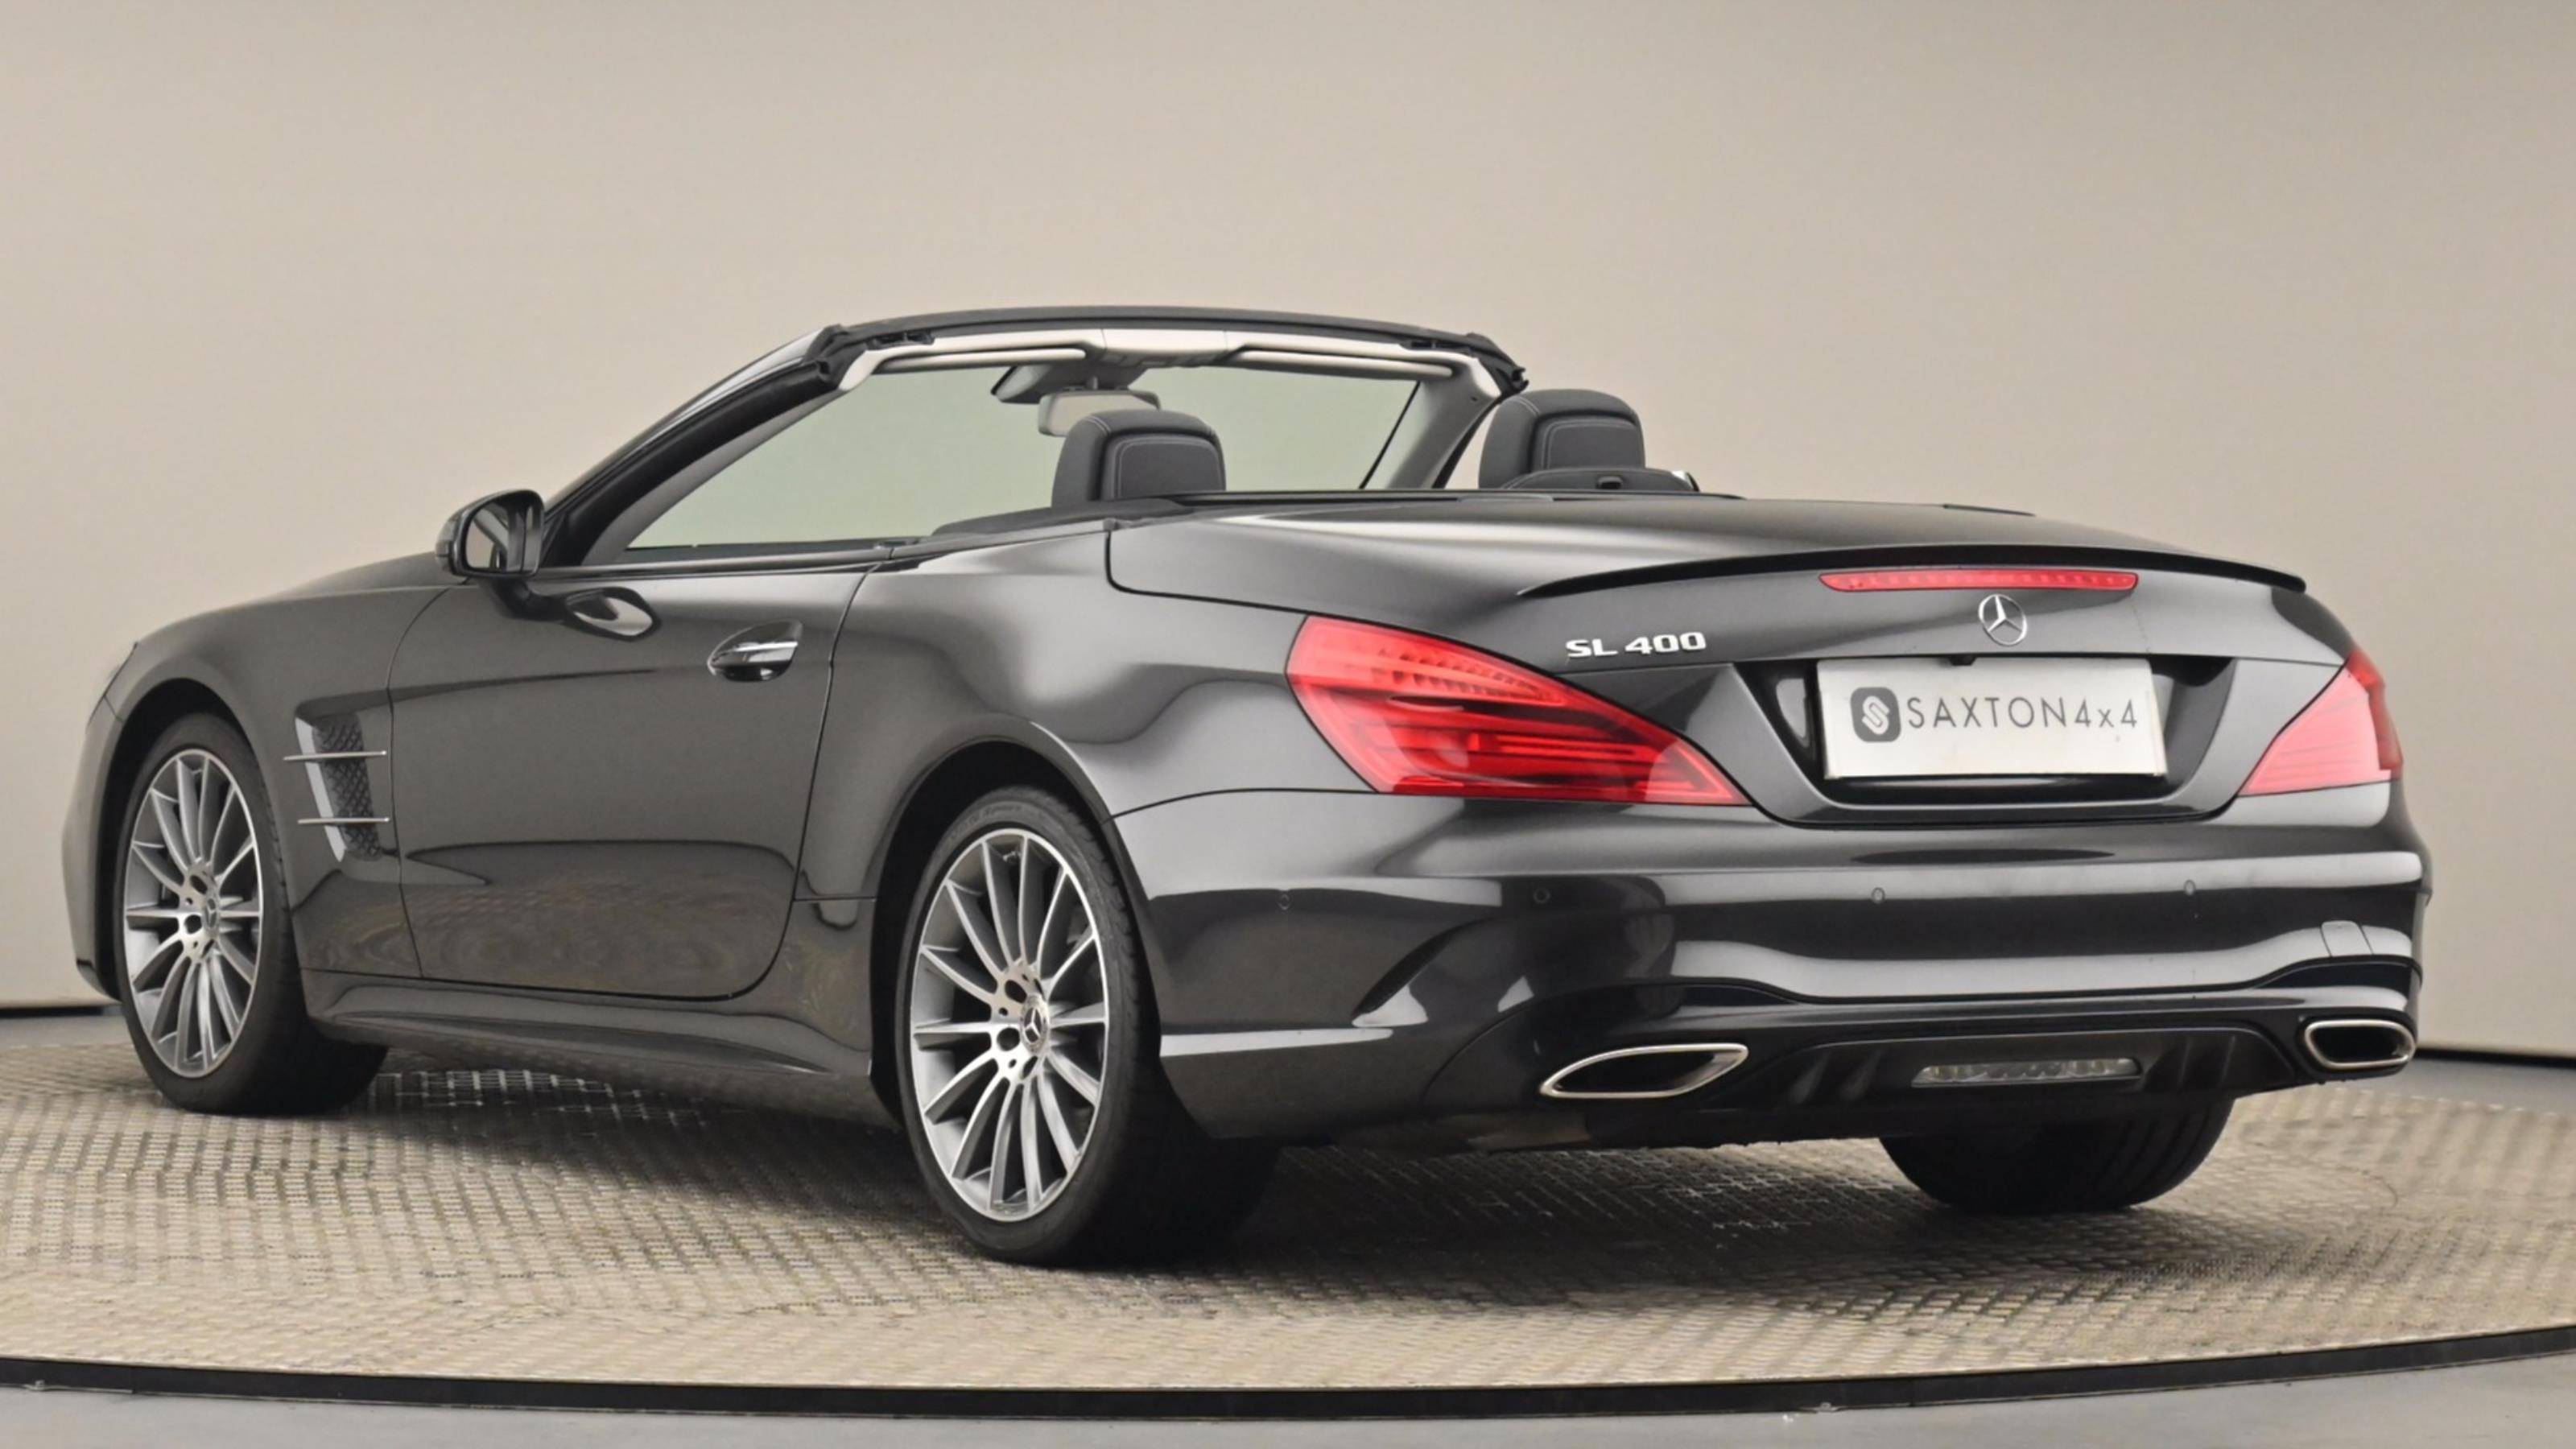 Used 2019 Mercedes-Benz SL CLASS SL 400 AMG Line Premium 2dr 9G-Tronic GREY at Saxton4x4